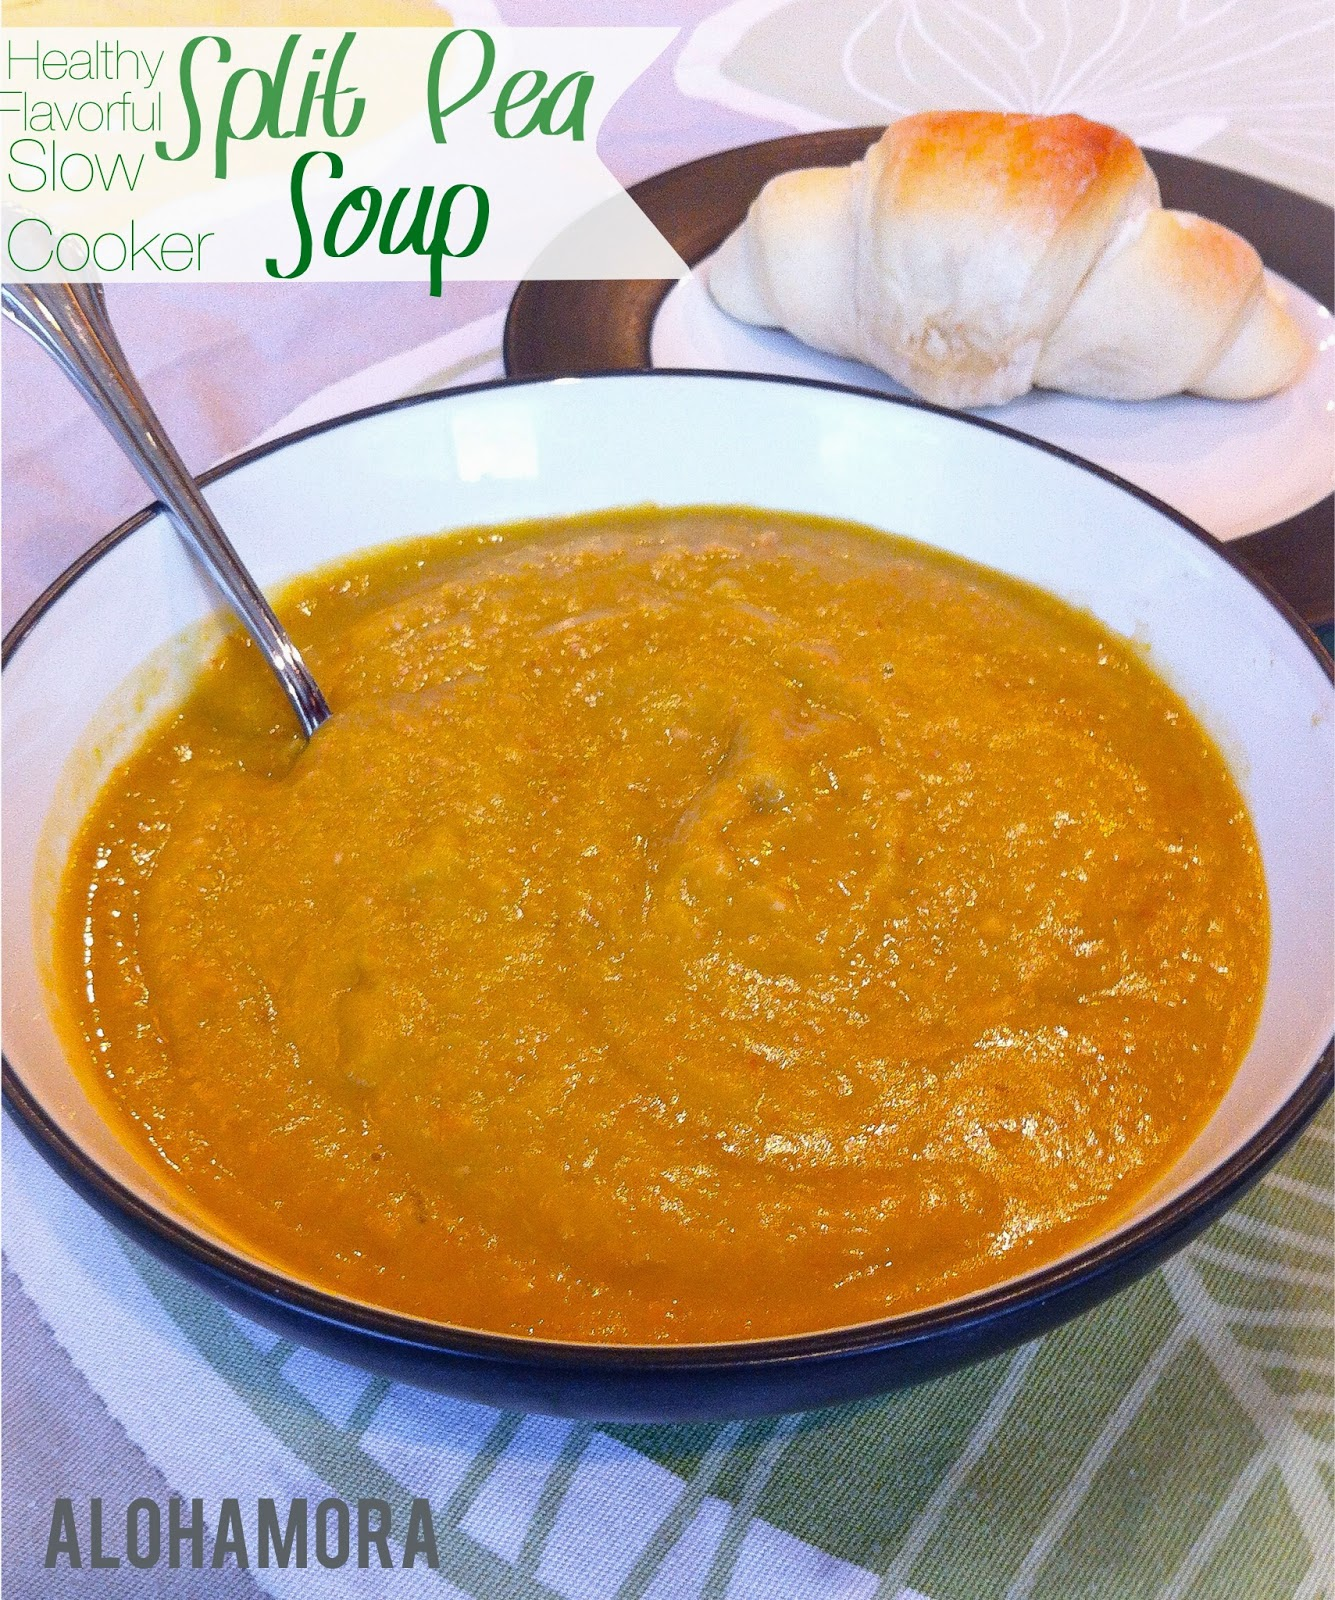 Split Pea Soup is healthy, flavorful, and diet friendly and so easy to make in a crock pot/slow cooker  Alohamora Open a Book http://alohamoraopenabook.blogspot.com/